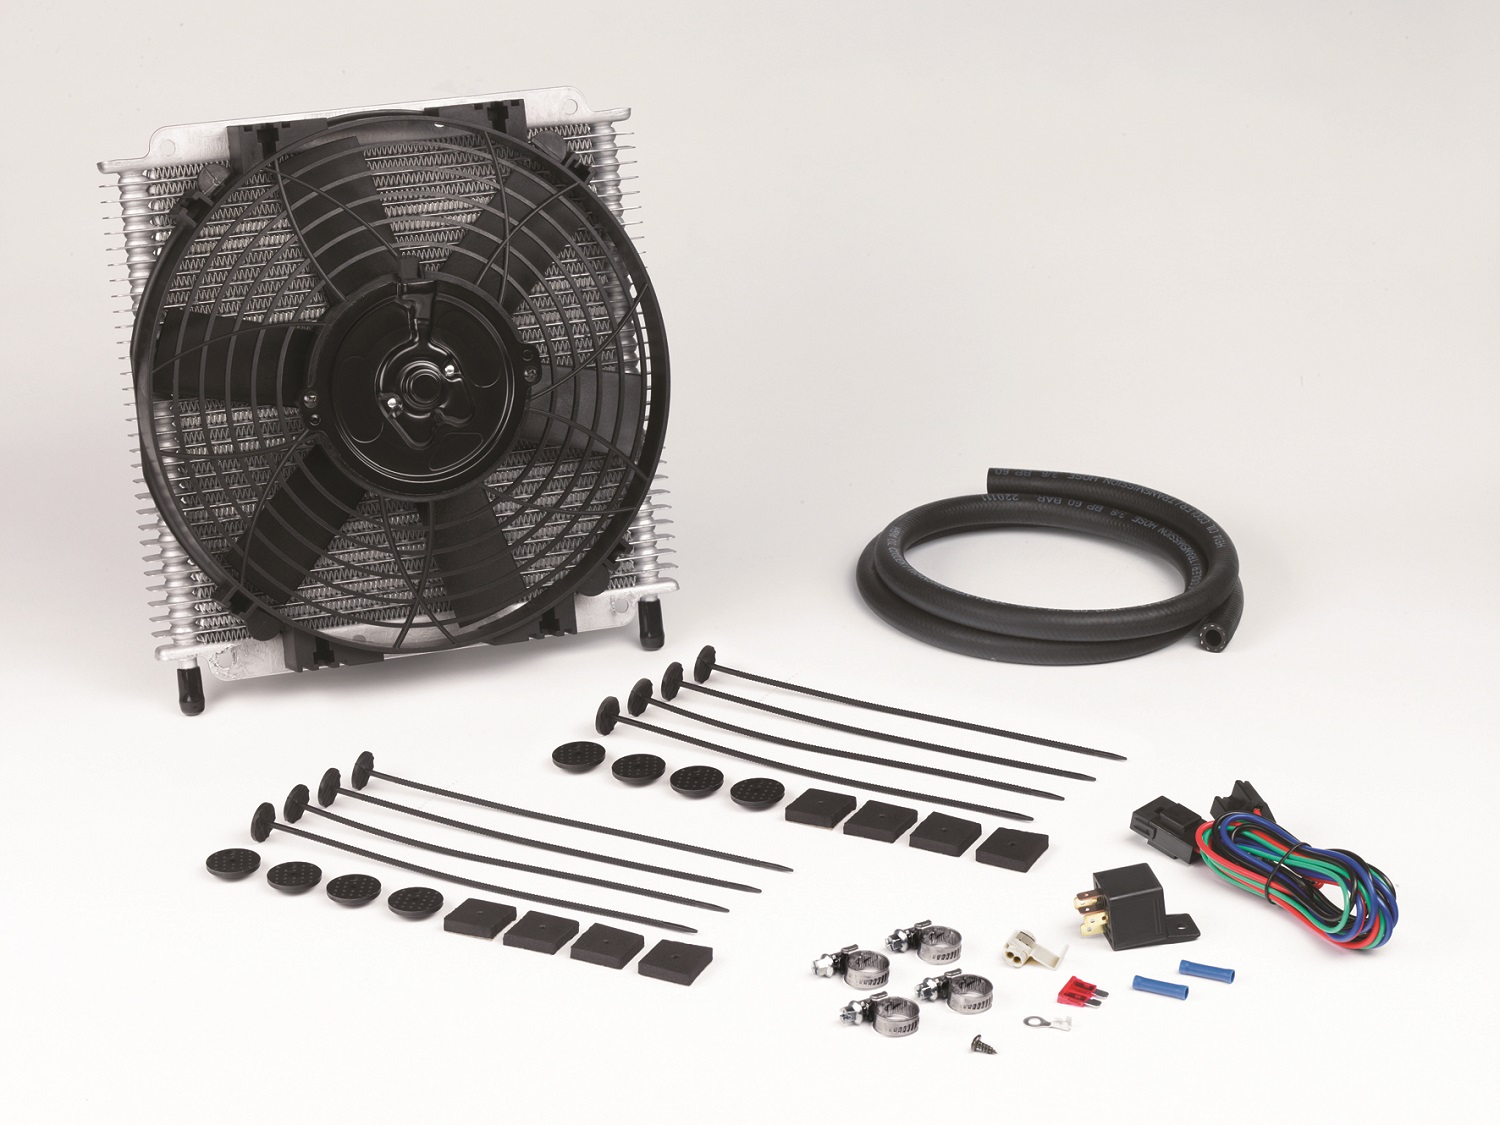 Davies Craig Transmission Oil Cooler and fan kit